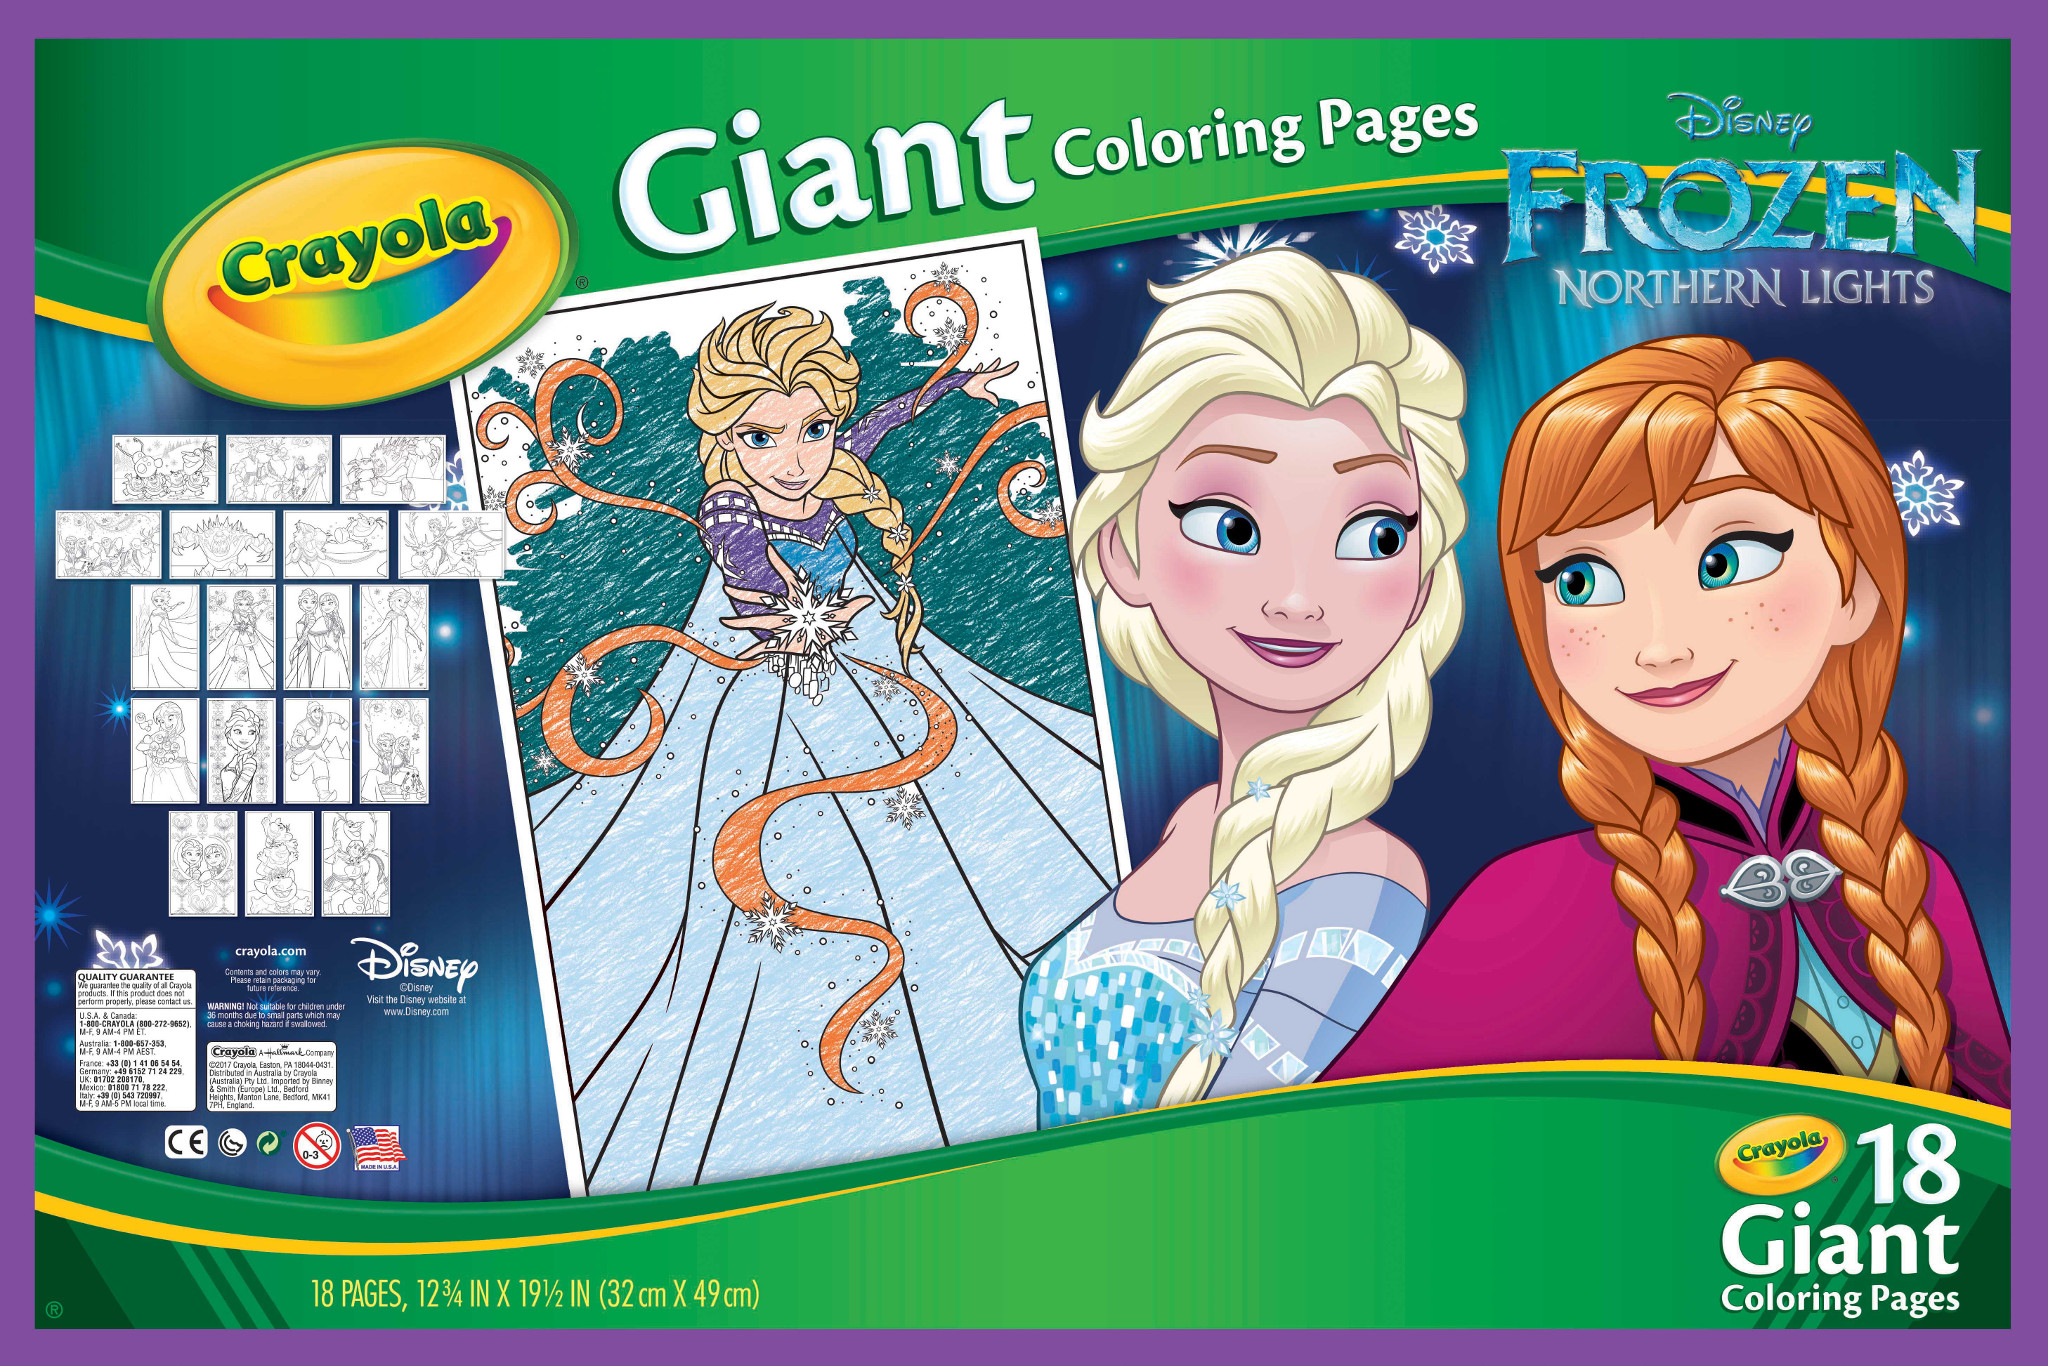 Crayola giant coloring pages featuring disneys frozen 18 pages